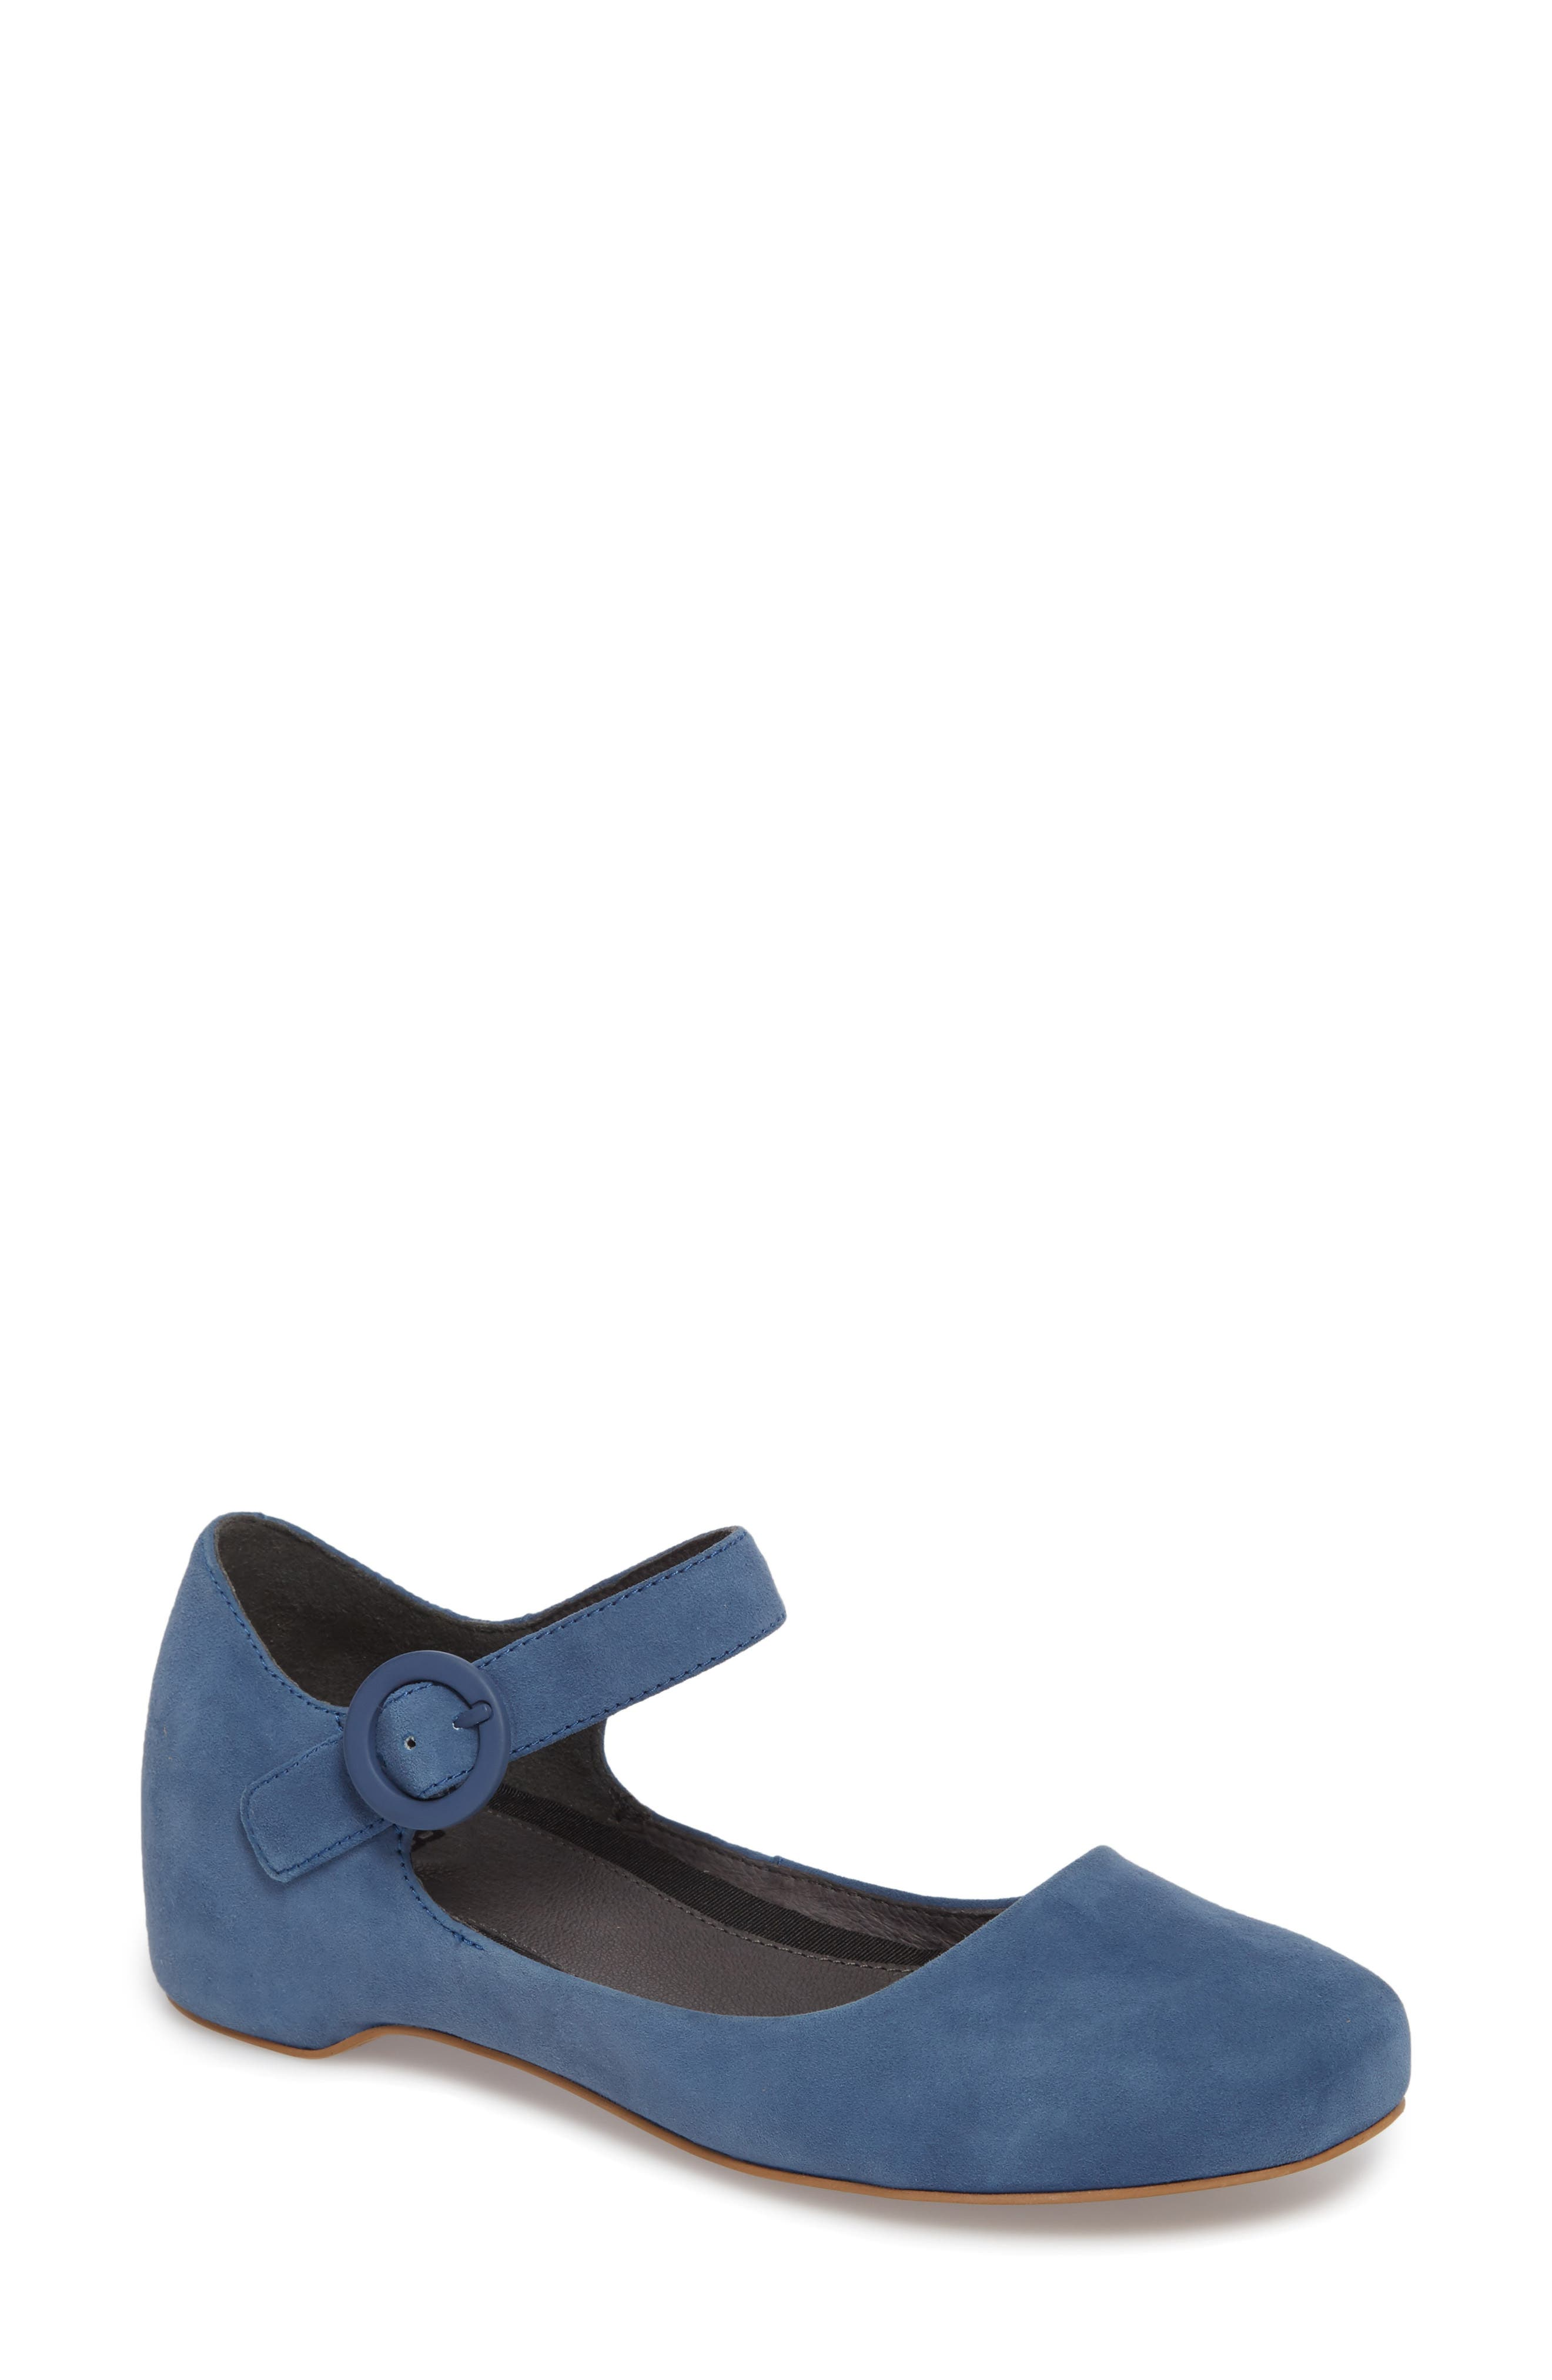 Serena Mary Jane Flat,                             Main thumbnail 1, color,                             Bright Blue Suede